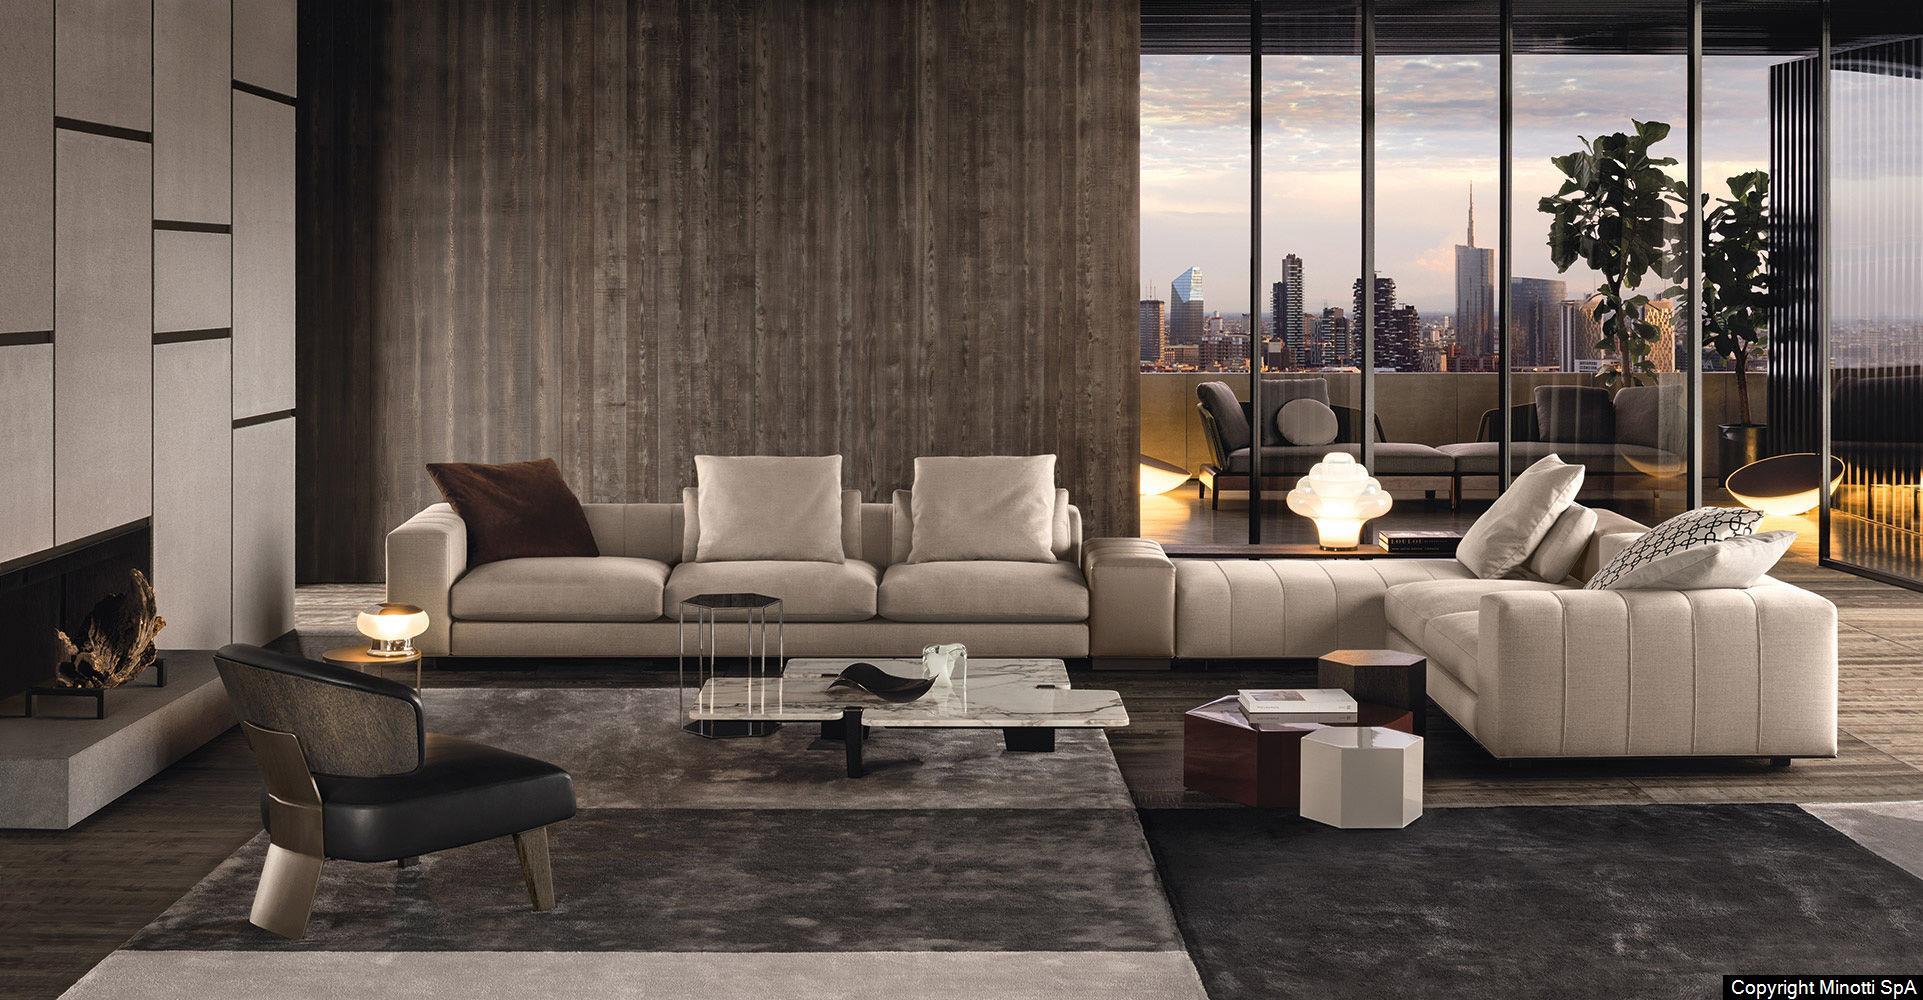 Minotti Raw Interiors